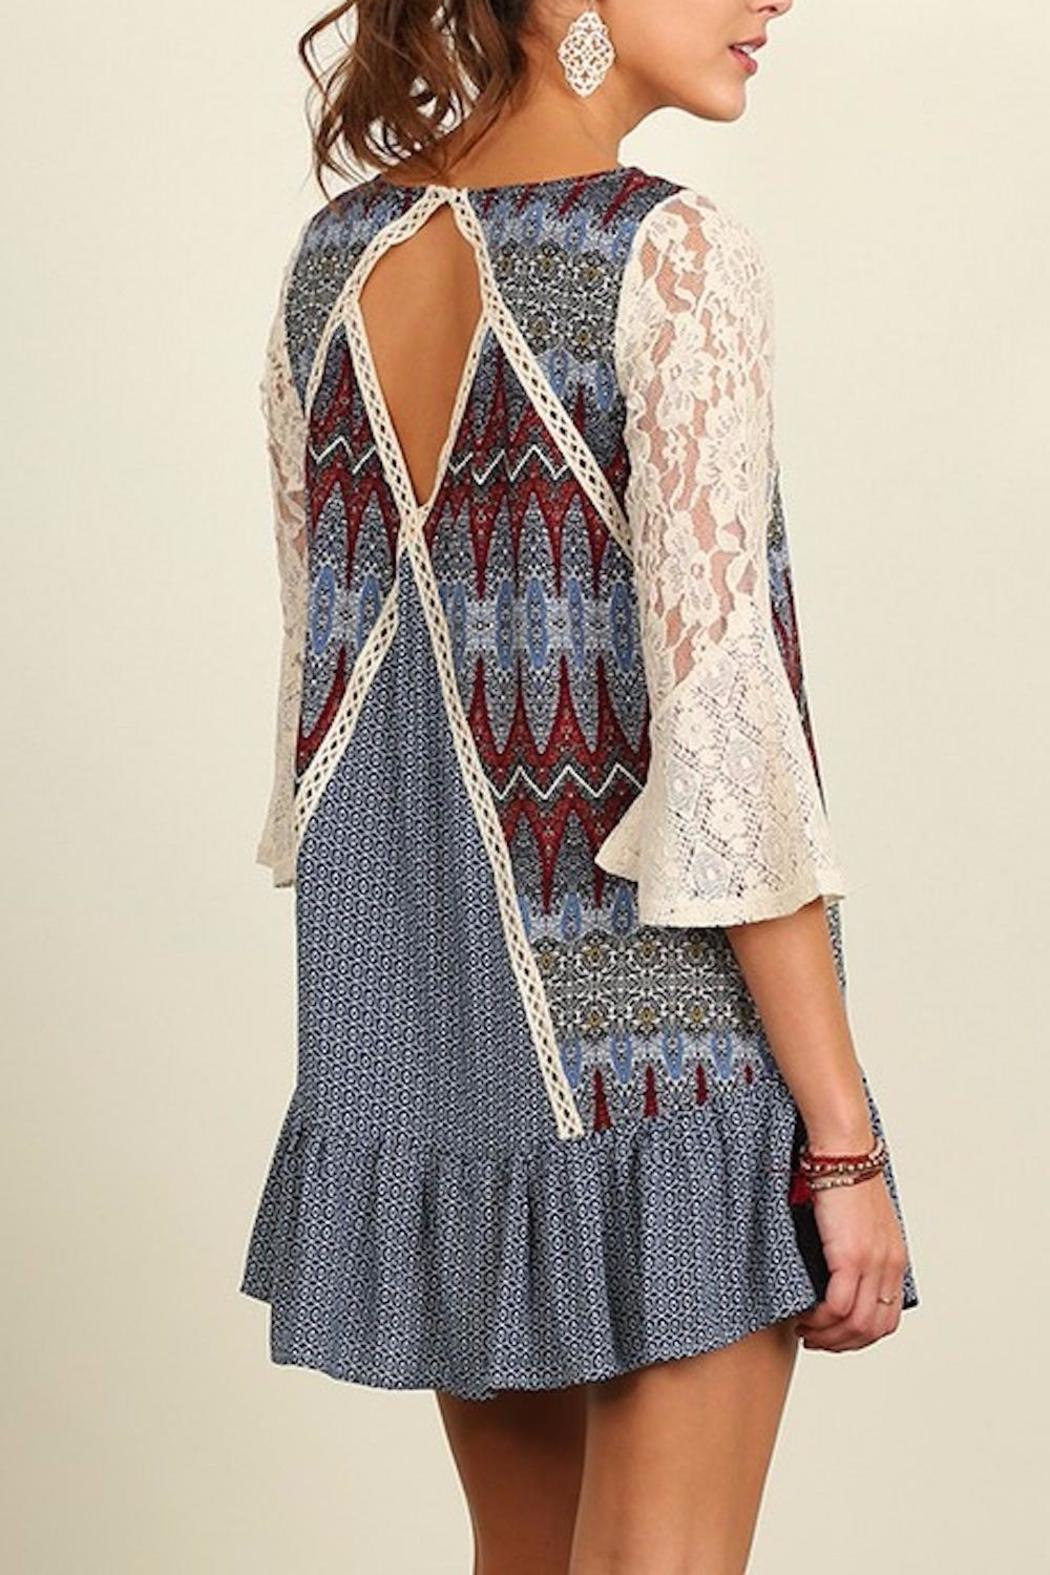 People Outfitter Crochet Patch Dress - Side Cropped Image